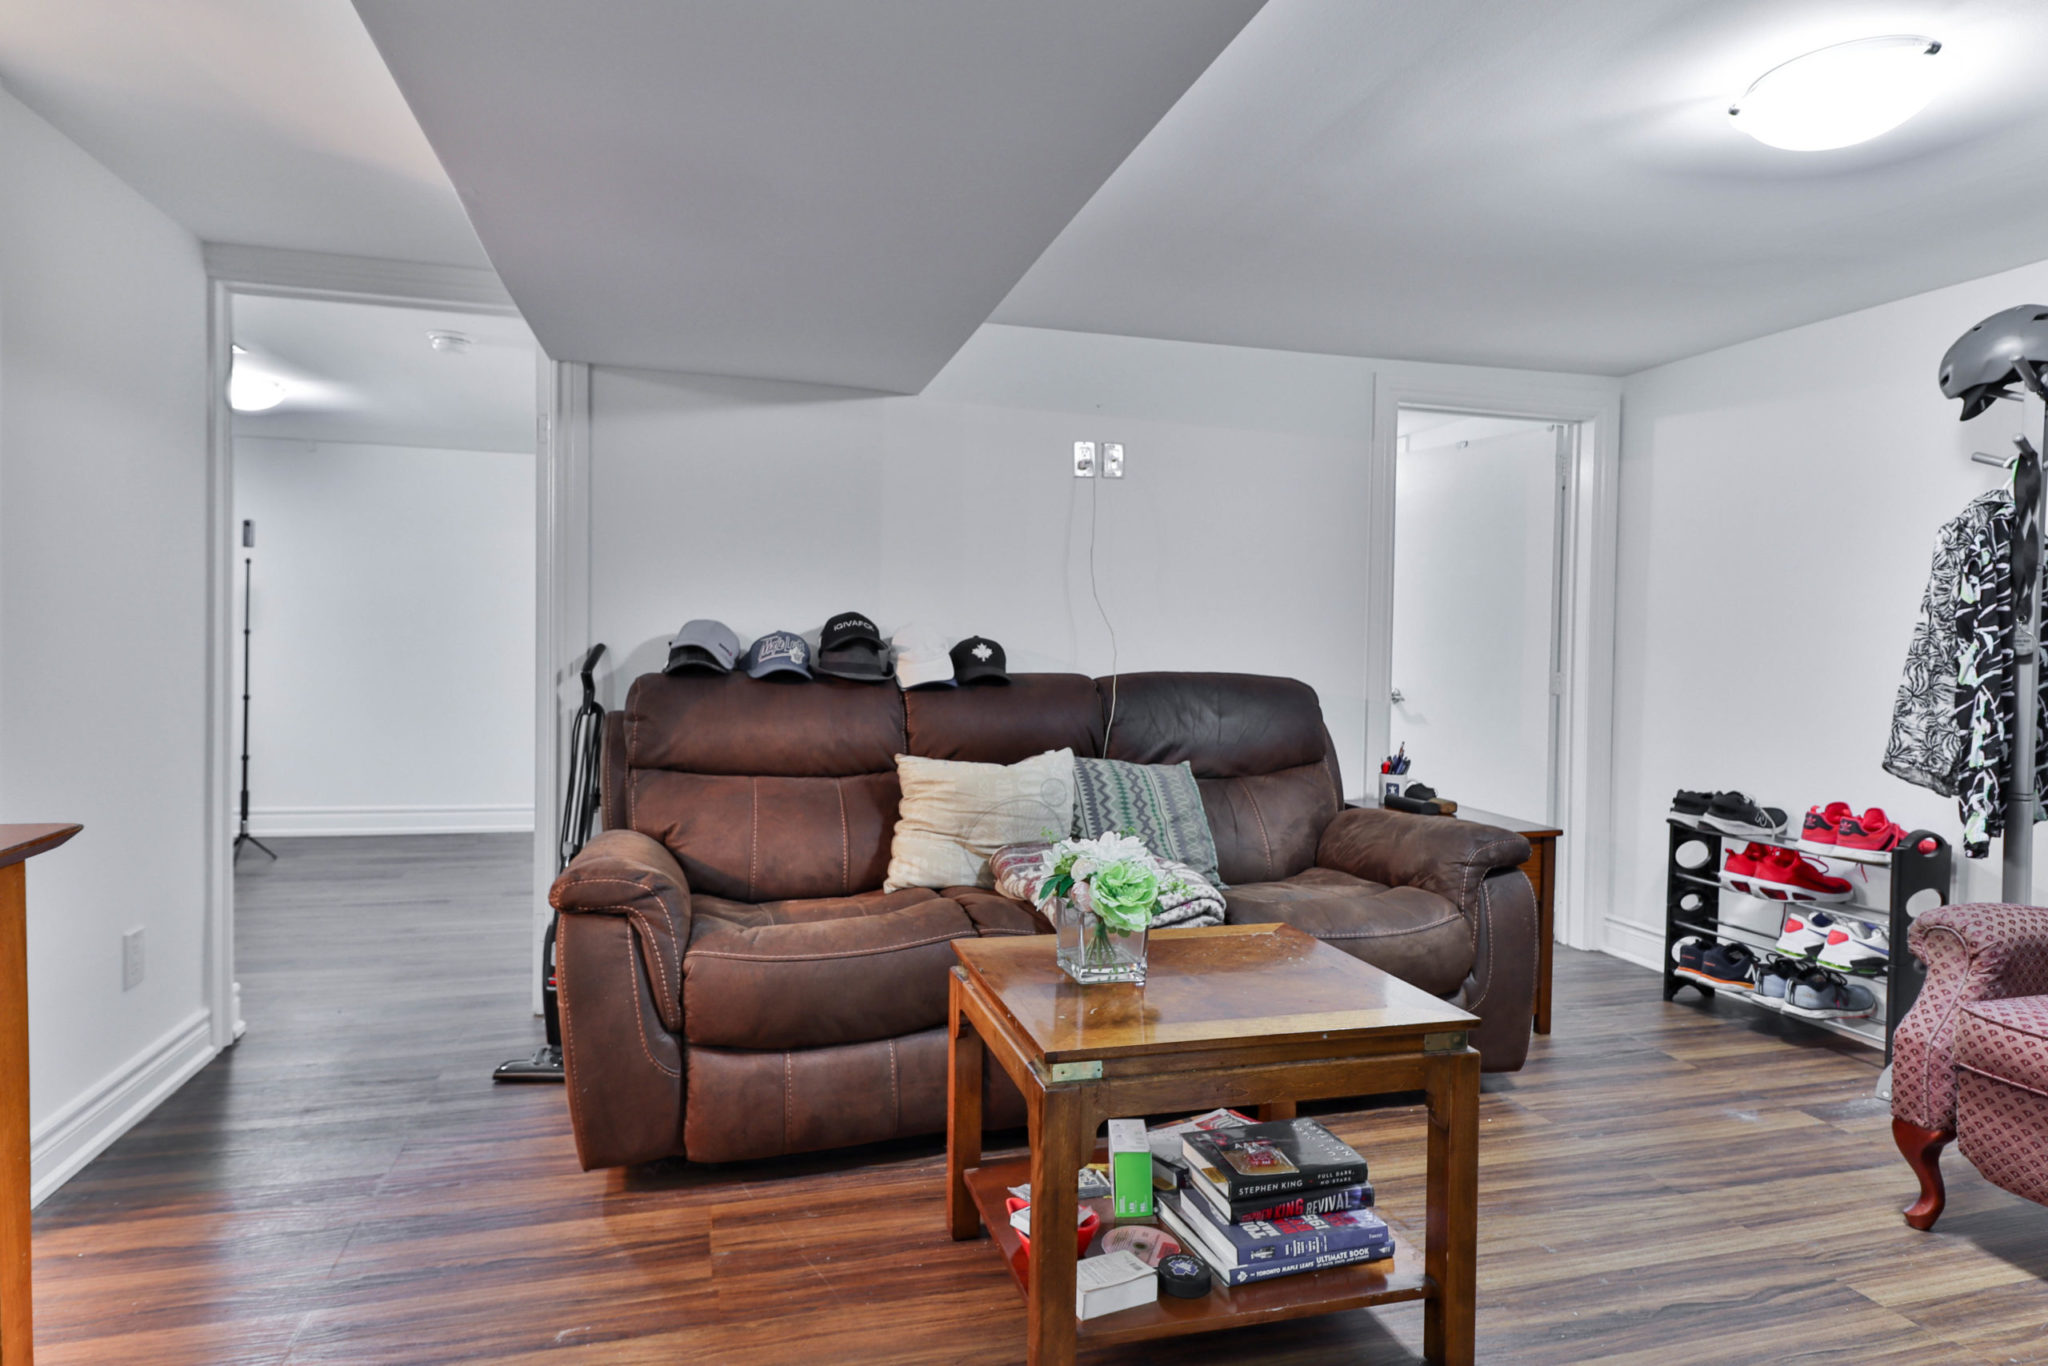 117 Phillip Ave finished basement with laminate floors, gray walls and ceiling lamps.